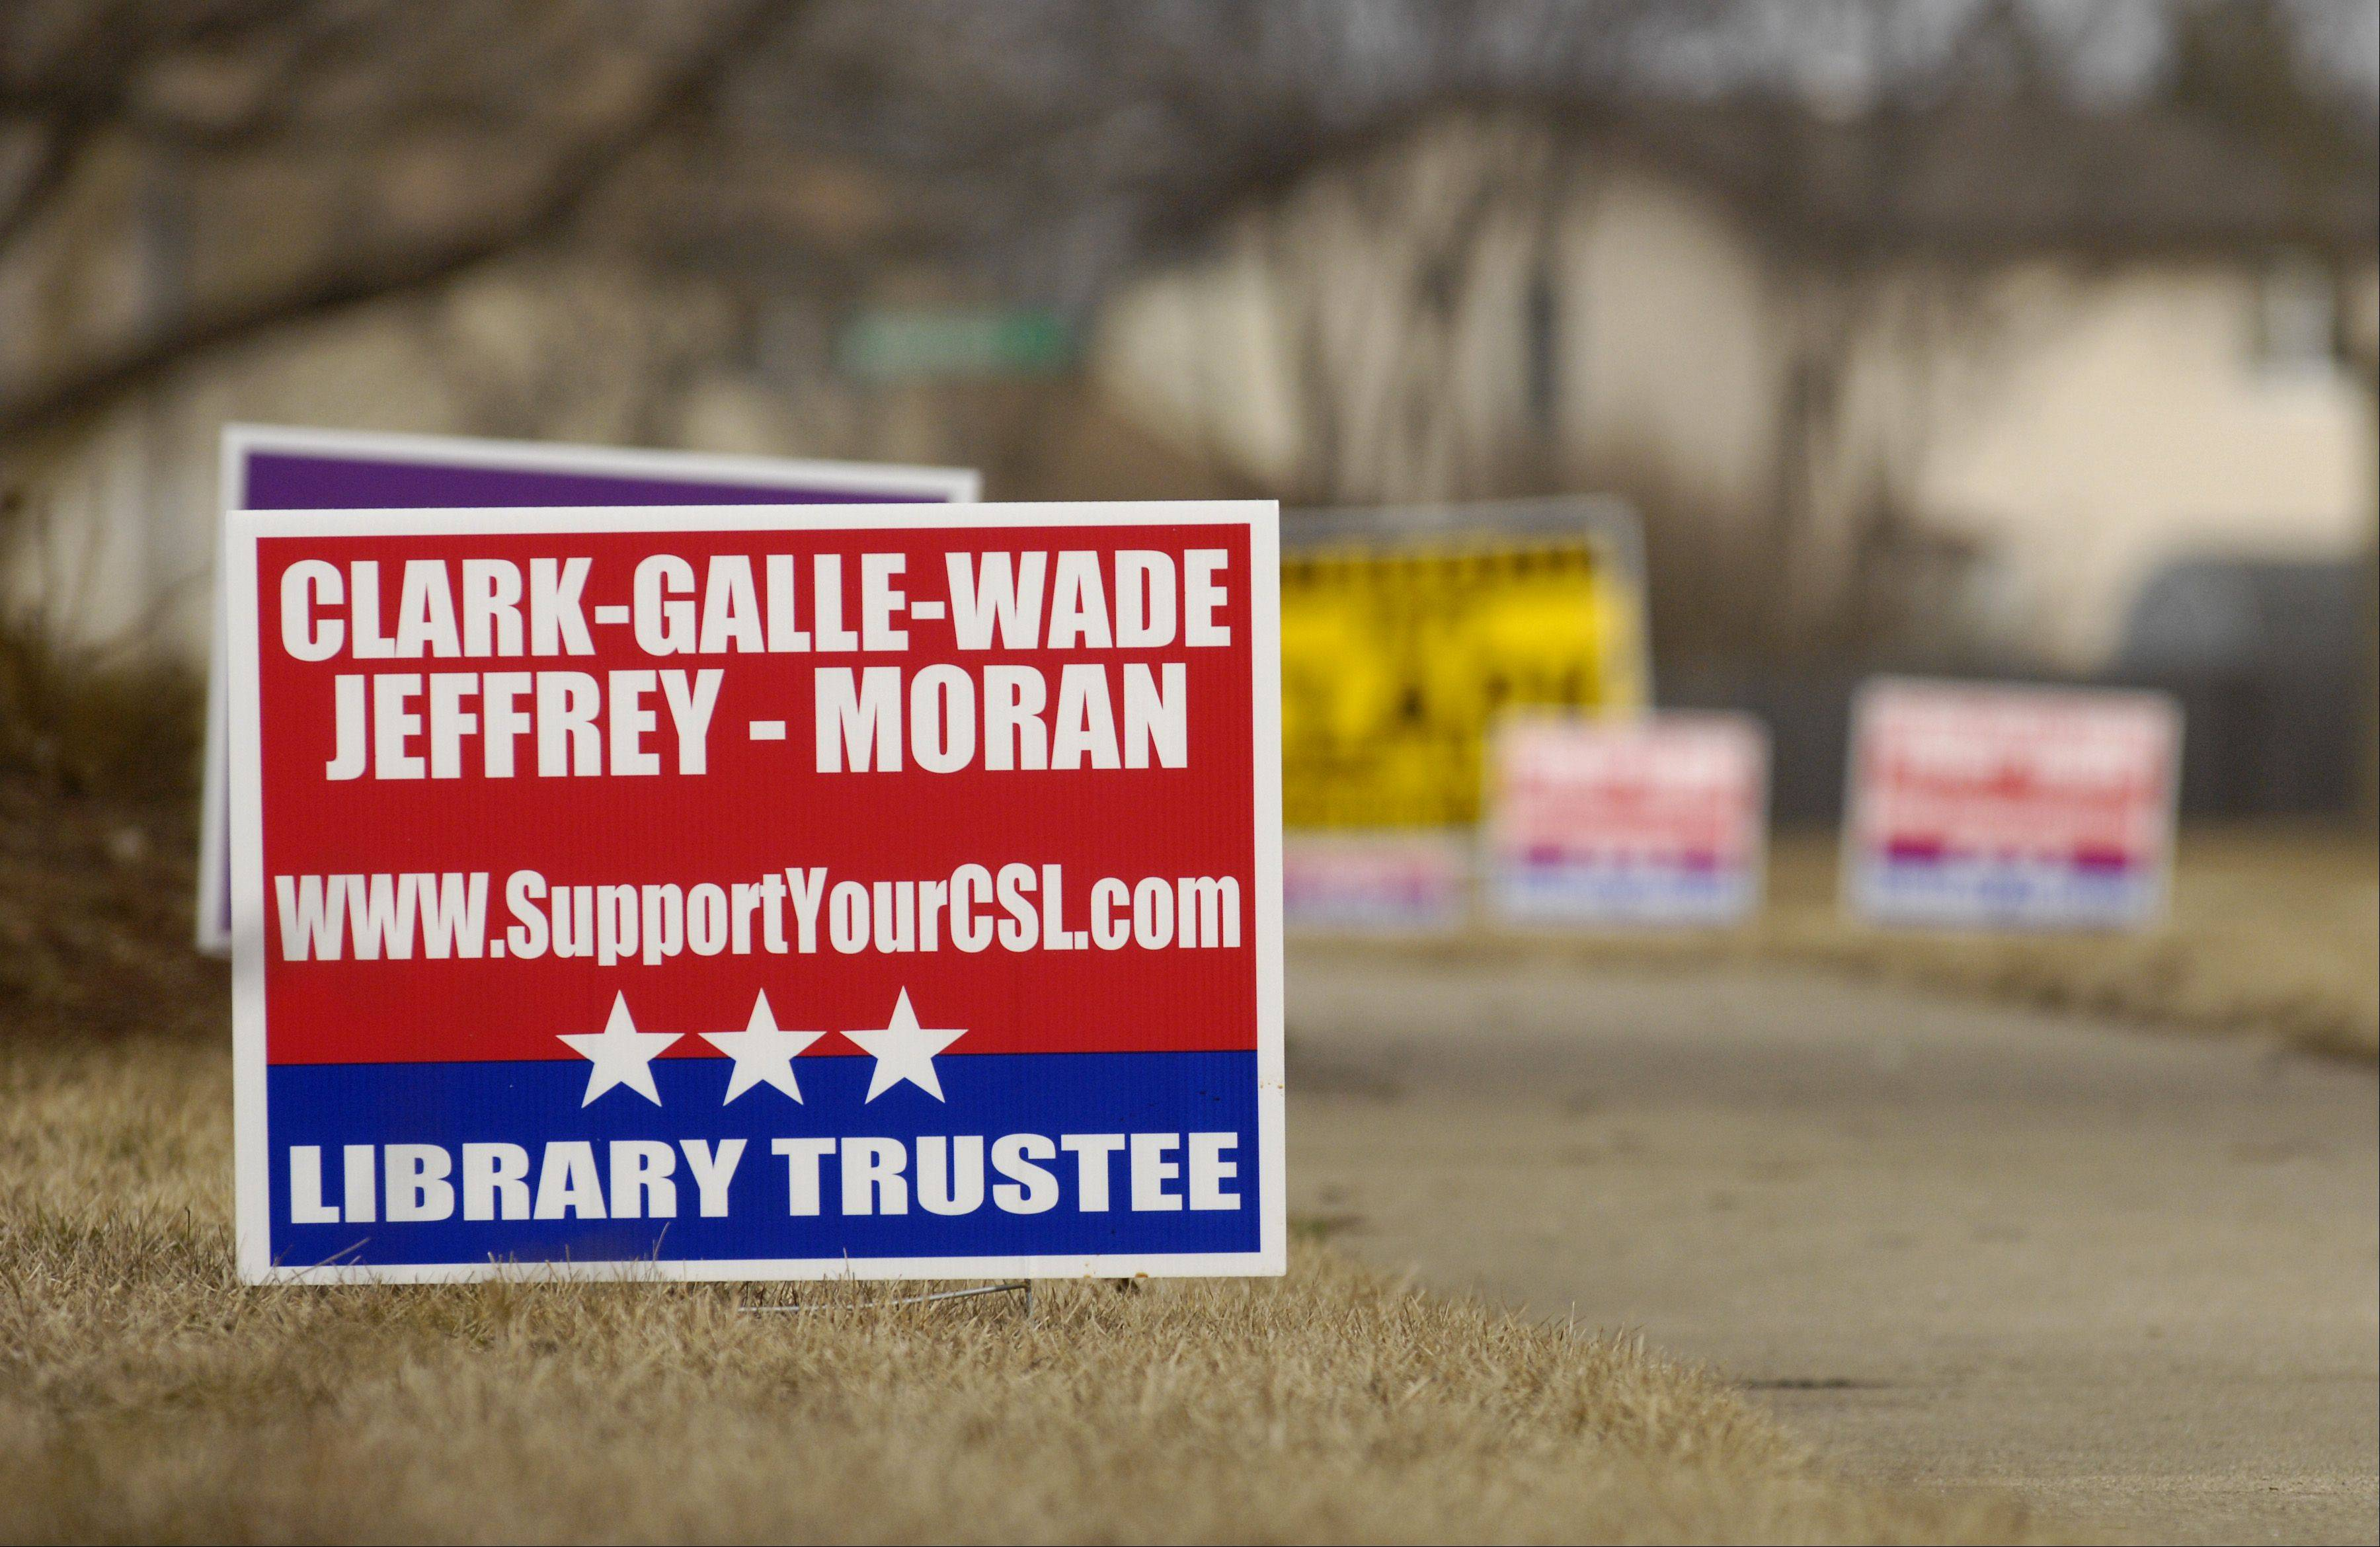 A home down the street from the Carol Stream Public Library has posted a campaign sign for the Support Your Library slate of candidates.